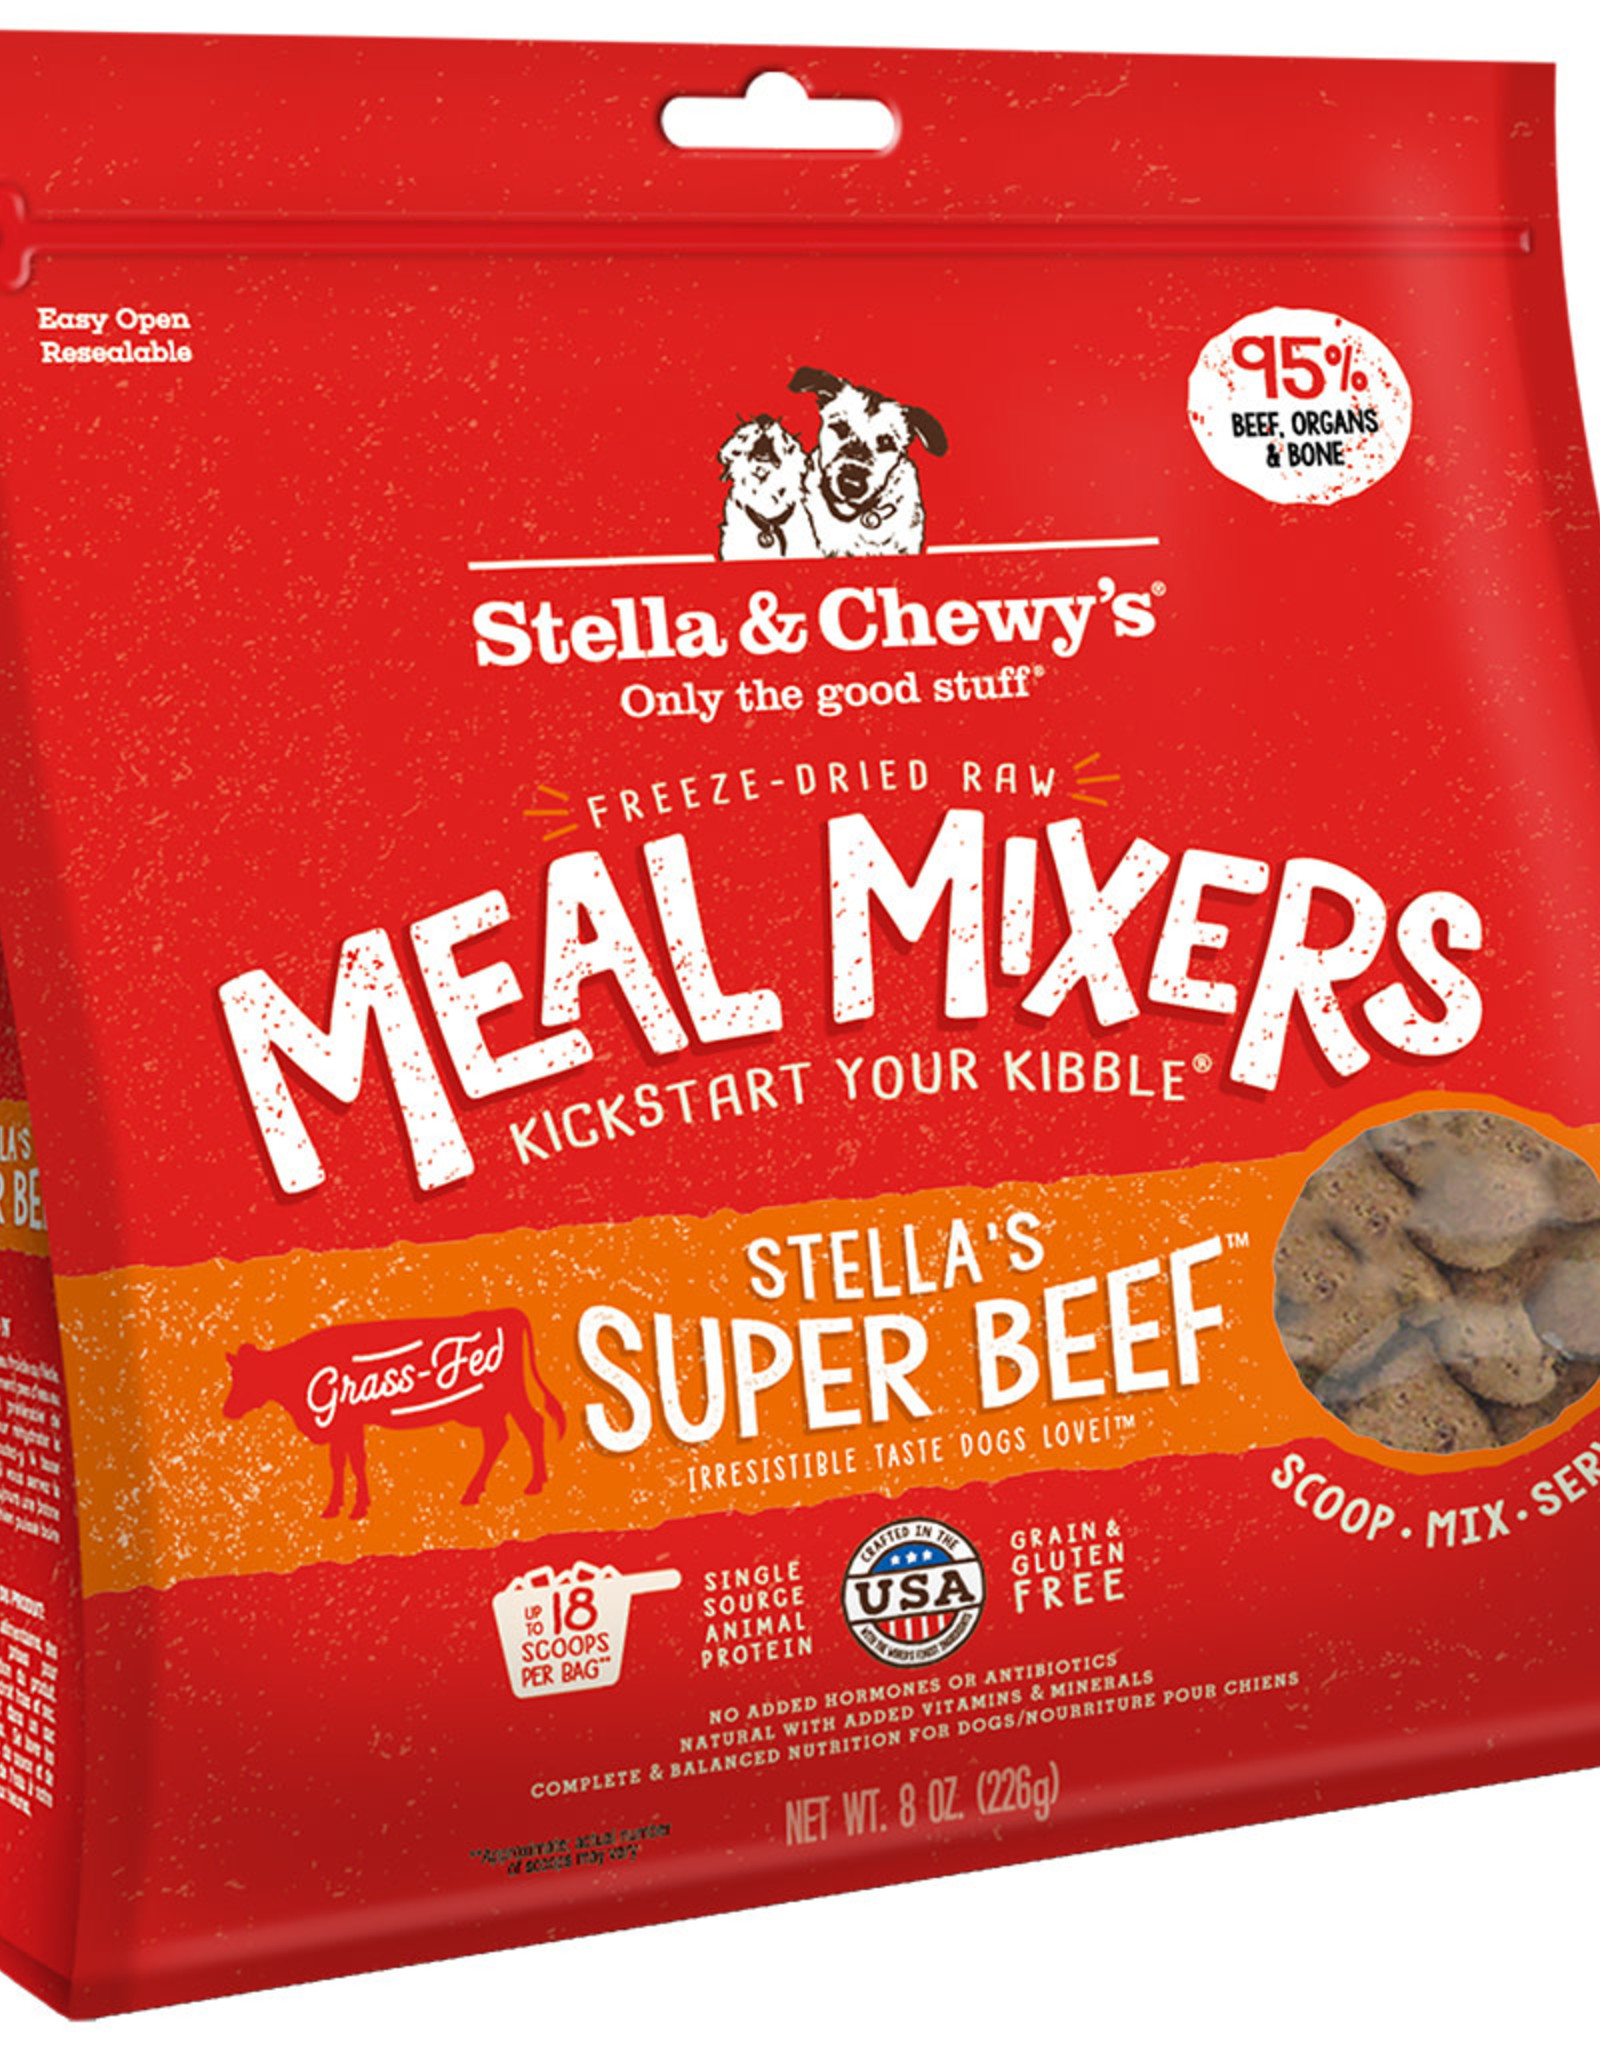 Stella & chewy's Stella & Chewy's Super Beef Meal Mixers 8OZ